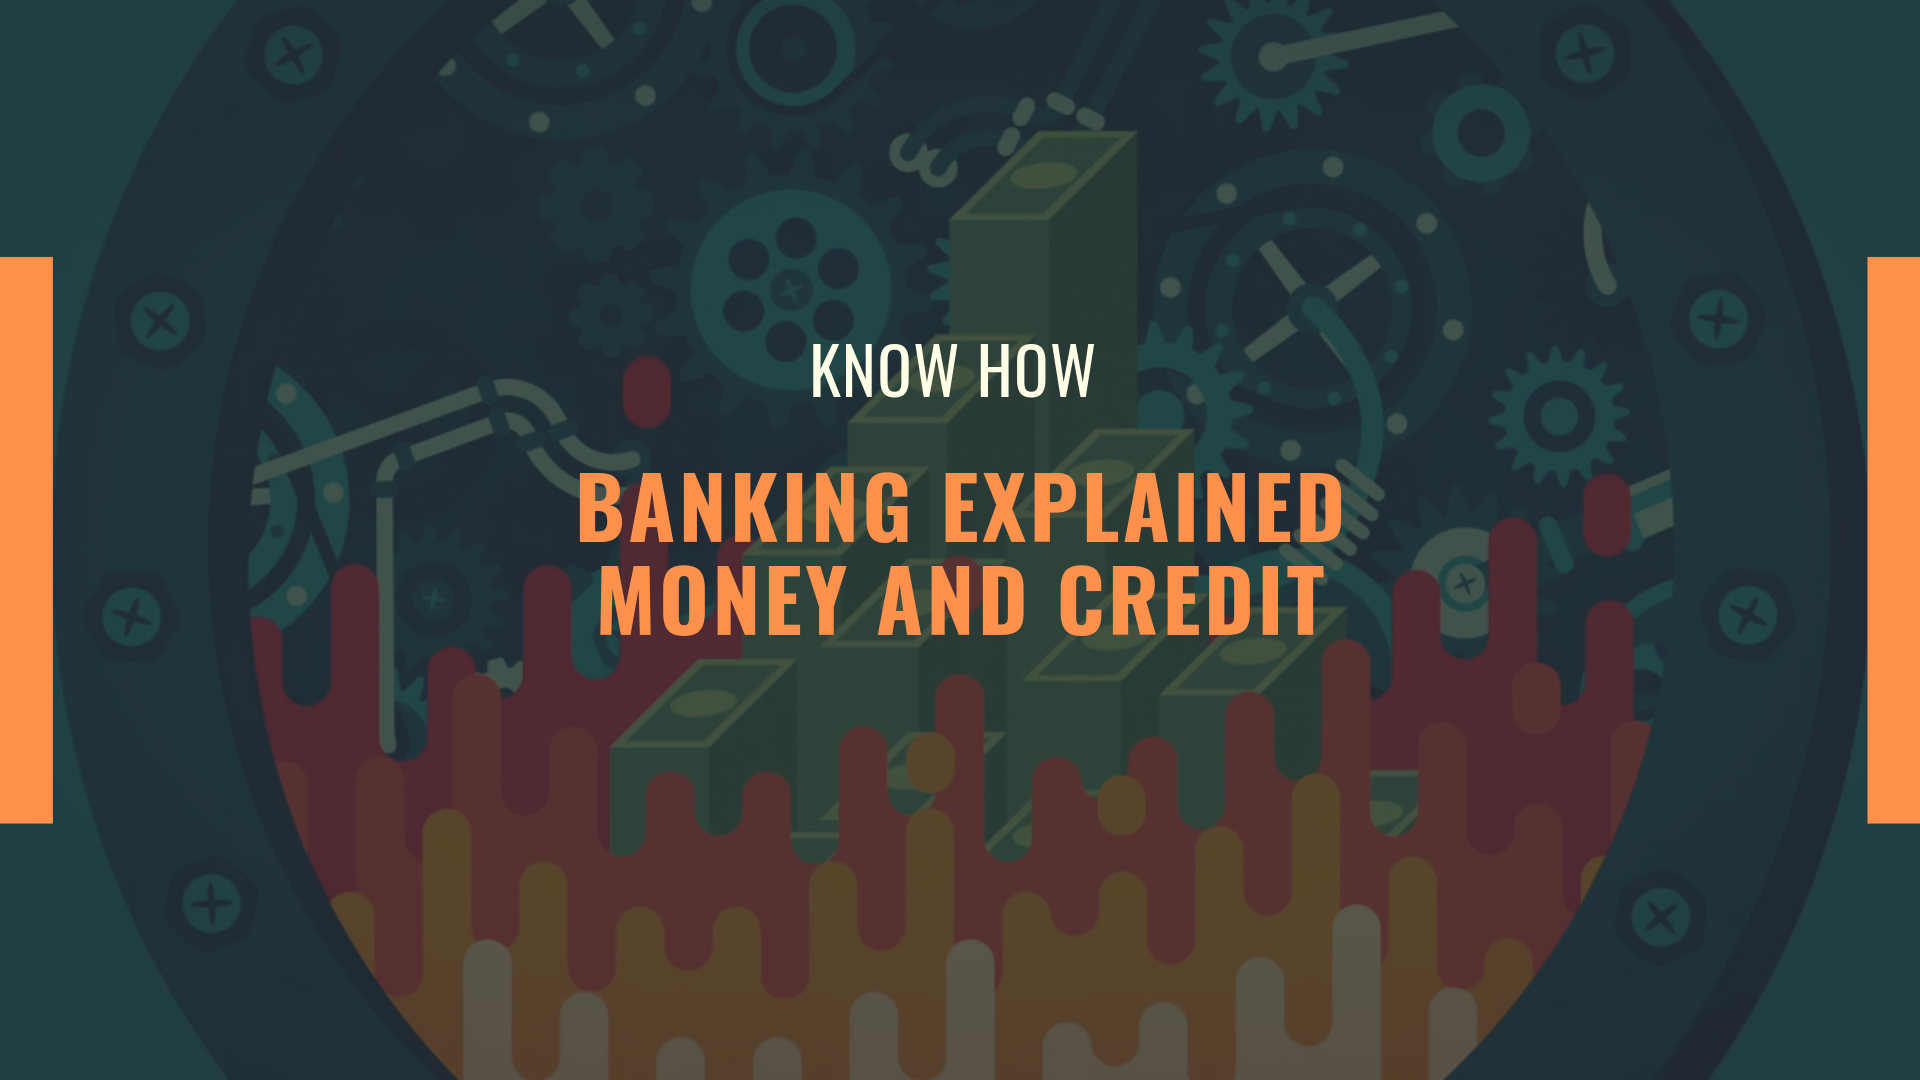 [KnowHow] Banking Explained – Money and Credit